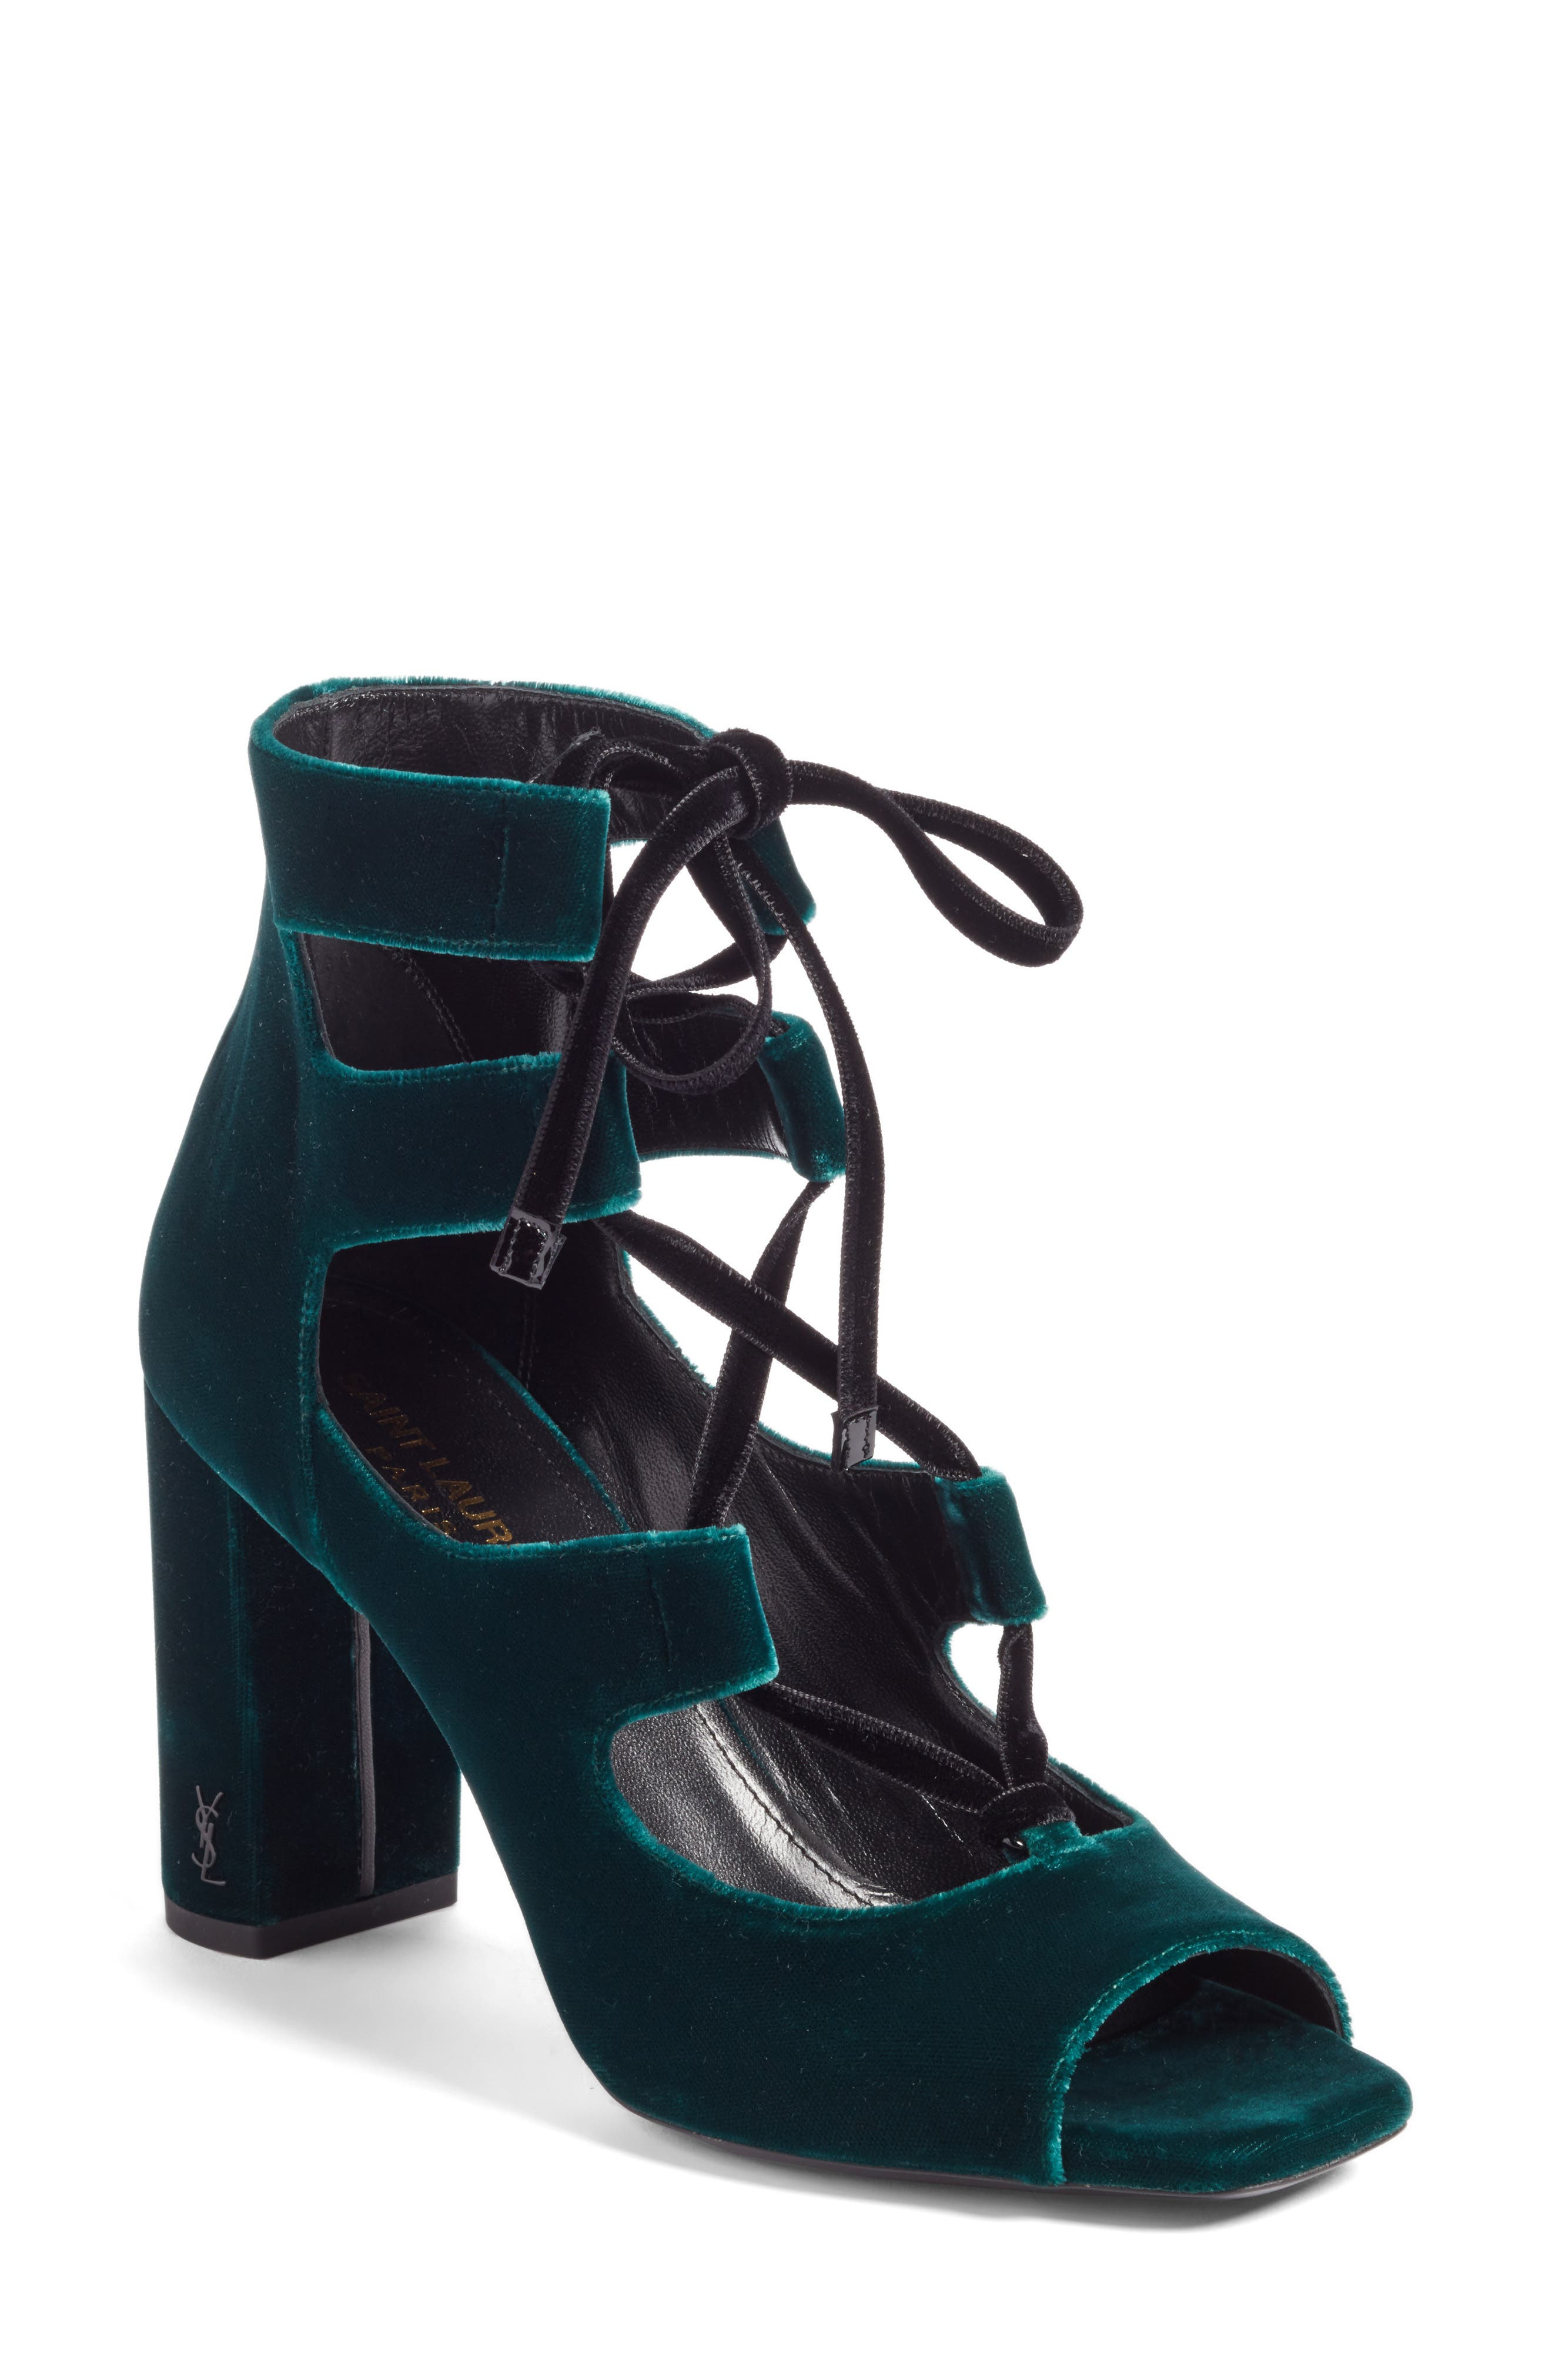 Loulou Ghillie Sandal,                         Main,                         color, Teal